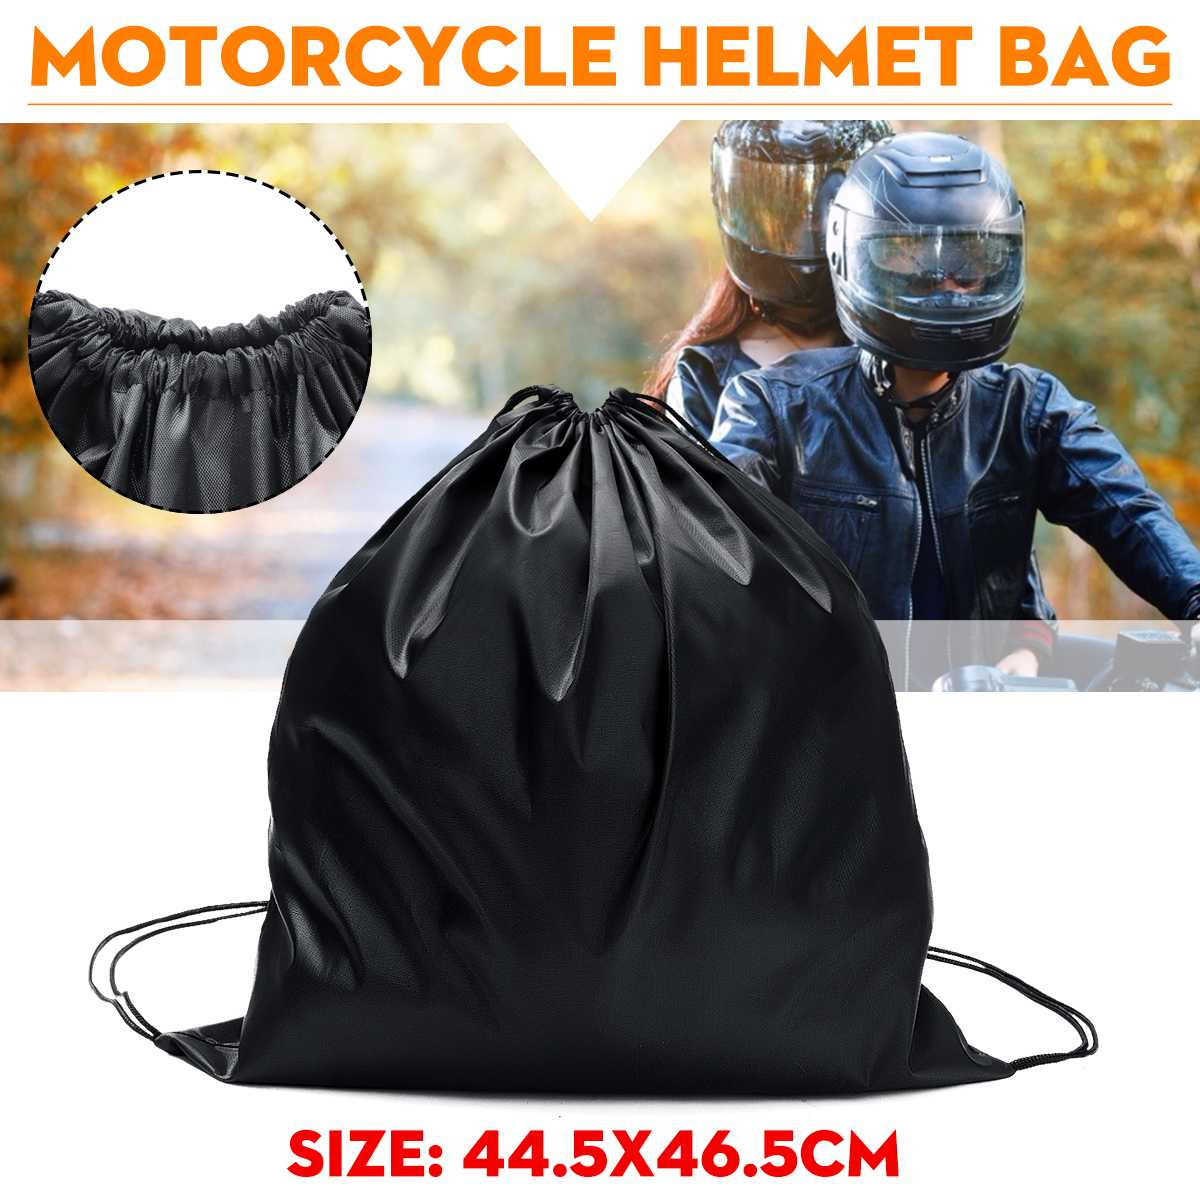 47x45cm Oxford Motorcycle Scooter Moped Helmet Protect Bag Storage Basketball Bag Carrying Pocket